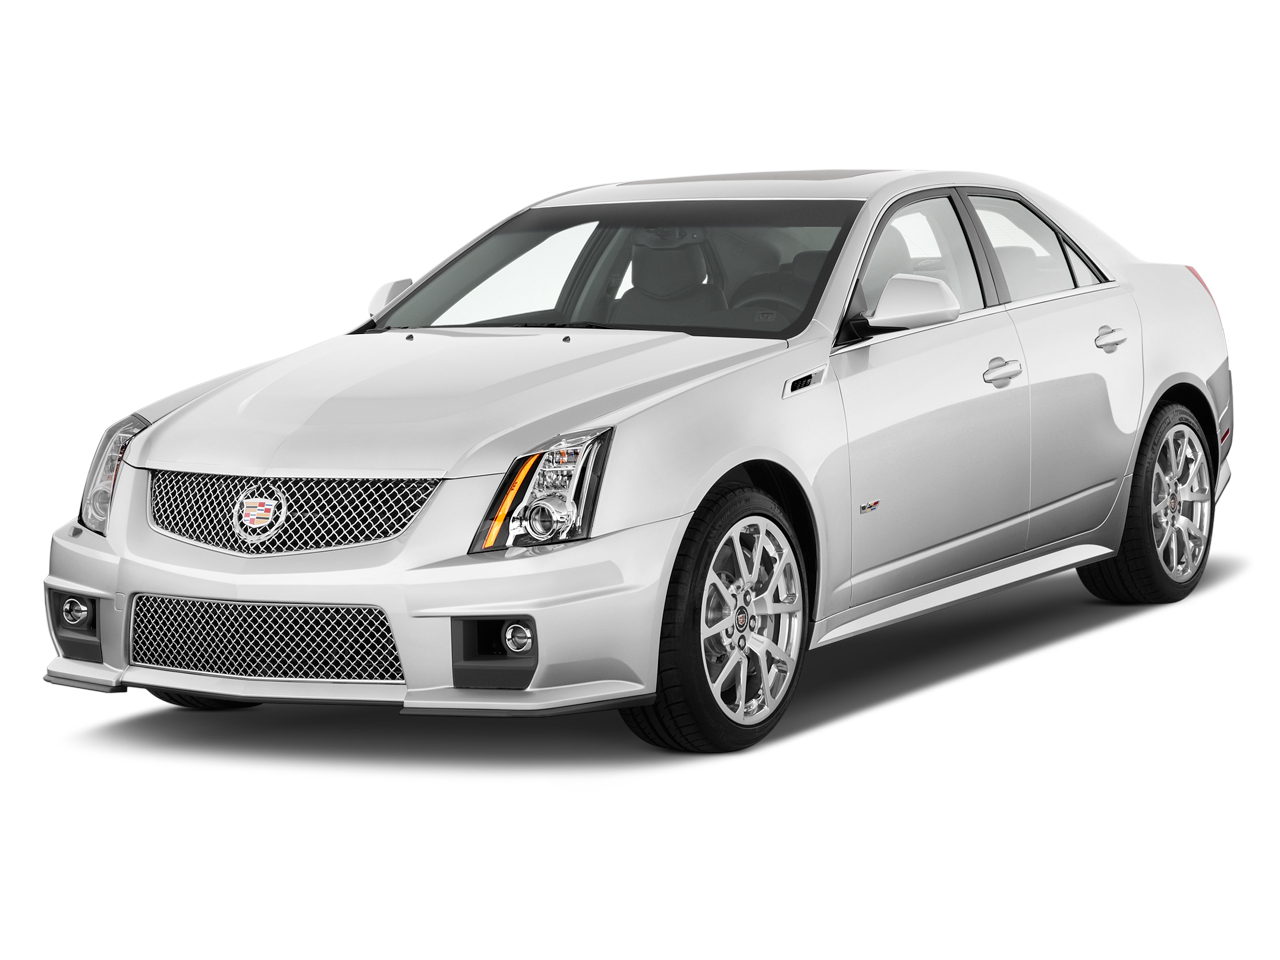 2011 Cadillac Cts Review Ratings Specs Prices And Photos The Car Connection